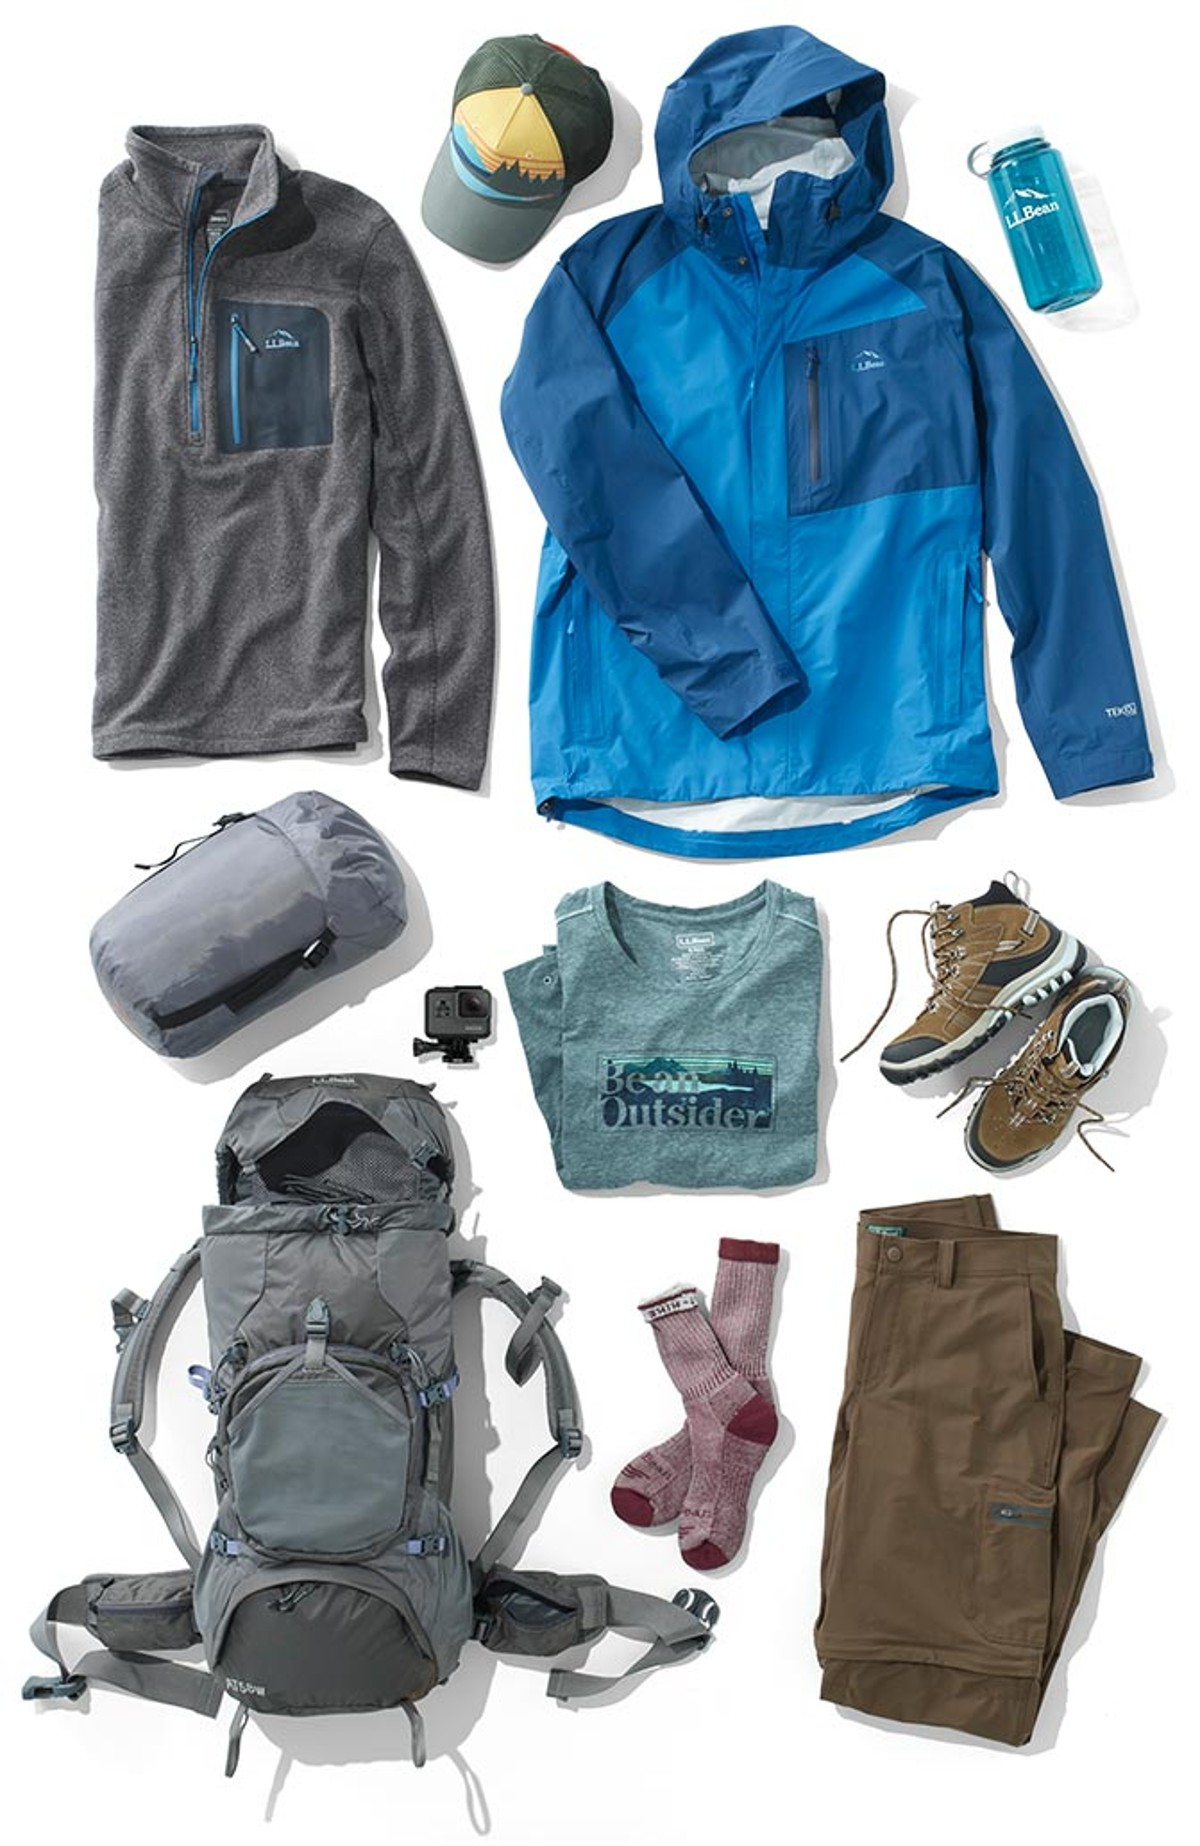 Group of products featured in the A.T. Relay packing list